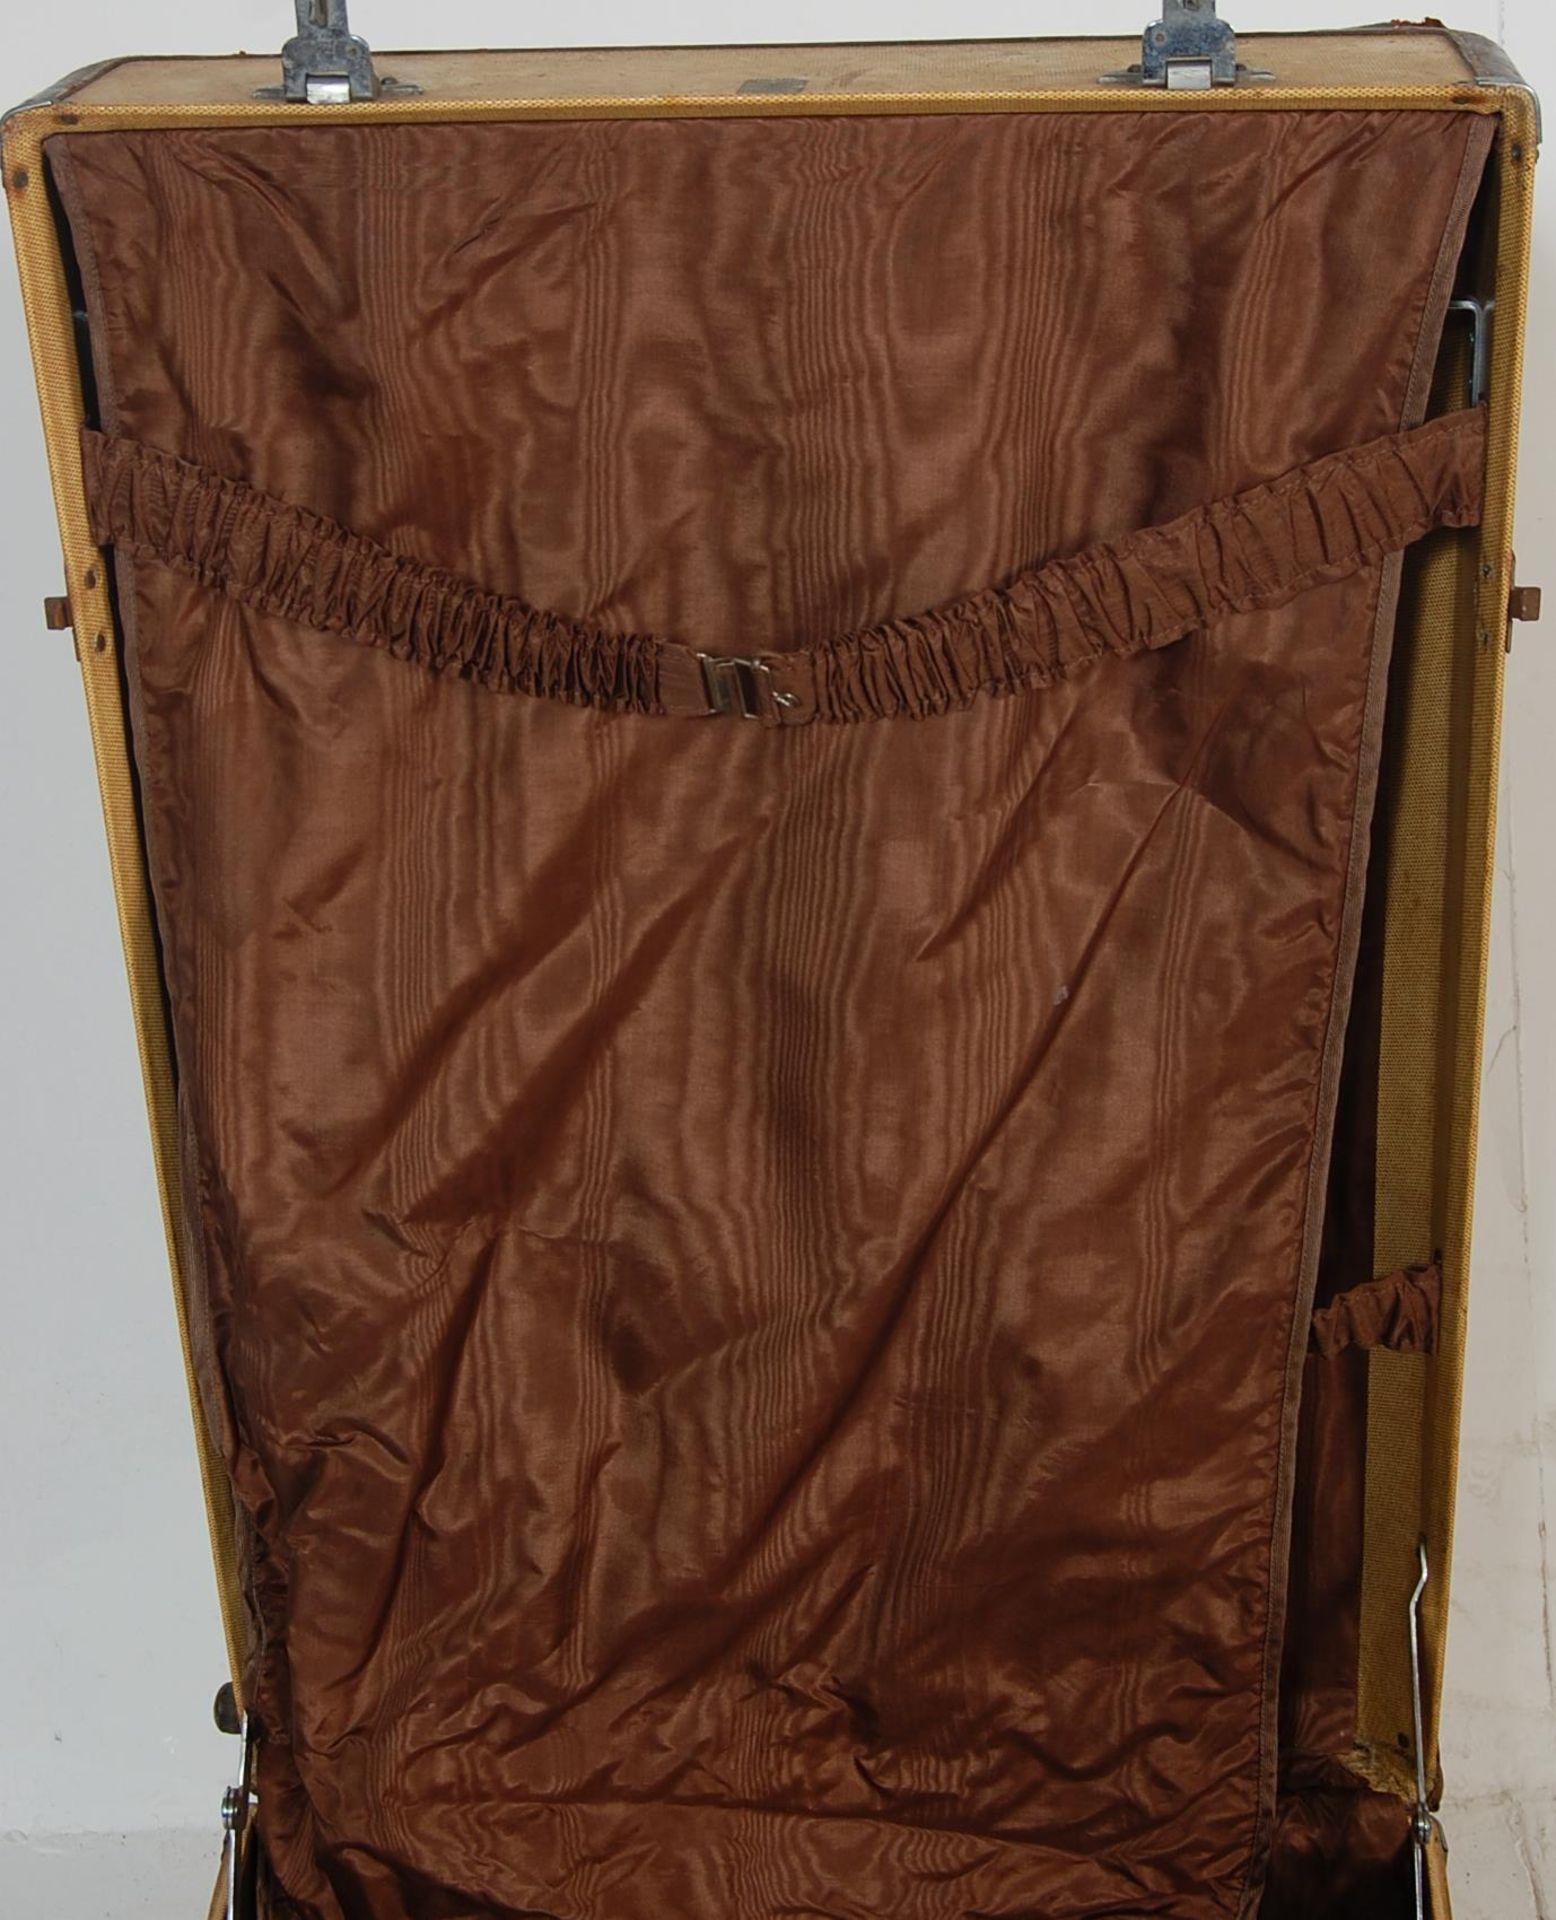 COLLECTION OF THREE EARLY 20TH CENTURY STEAMER TRUNKS - Image 6 of 12